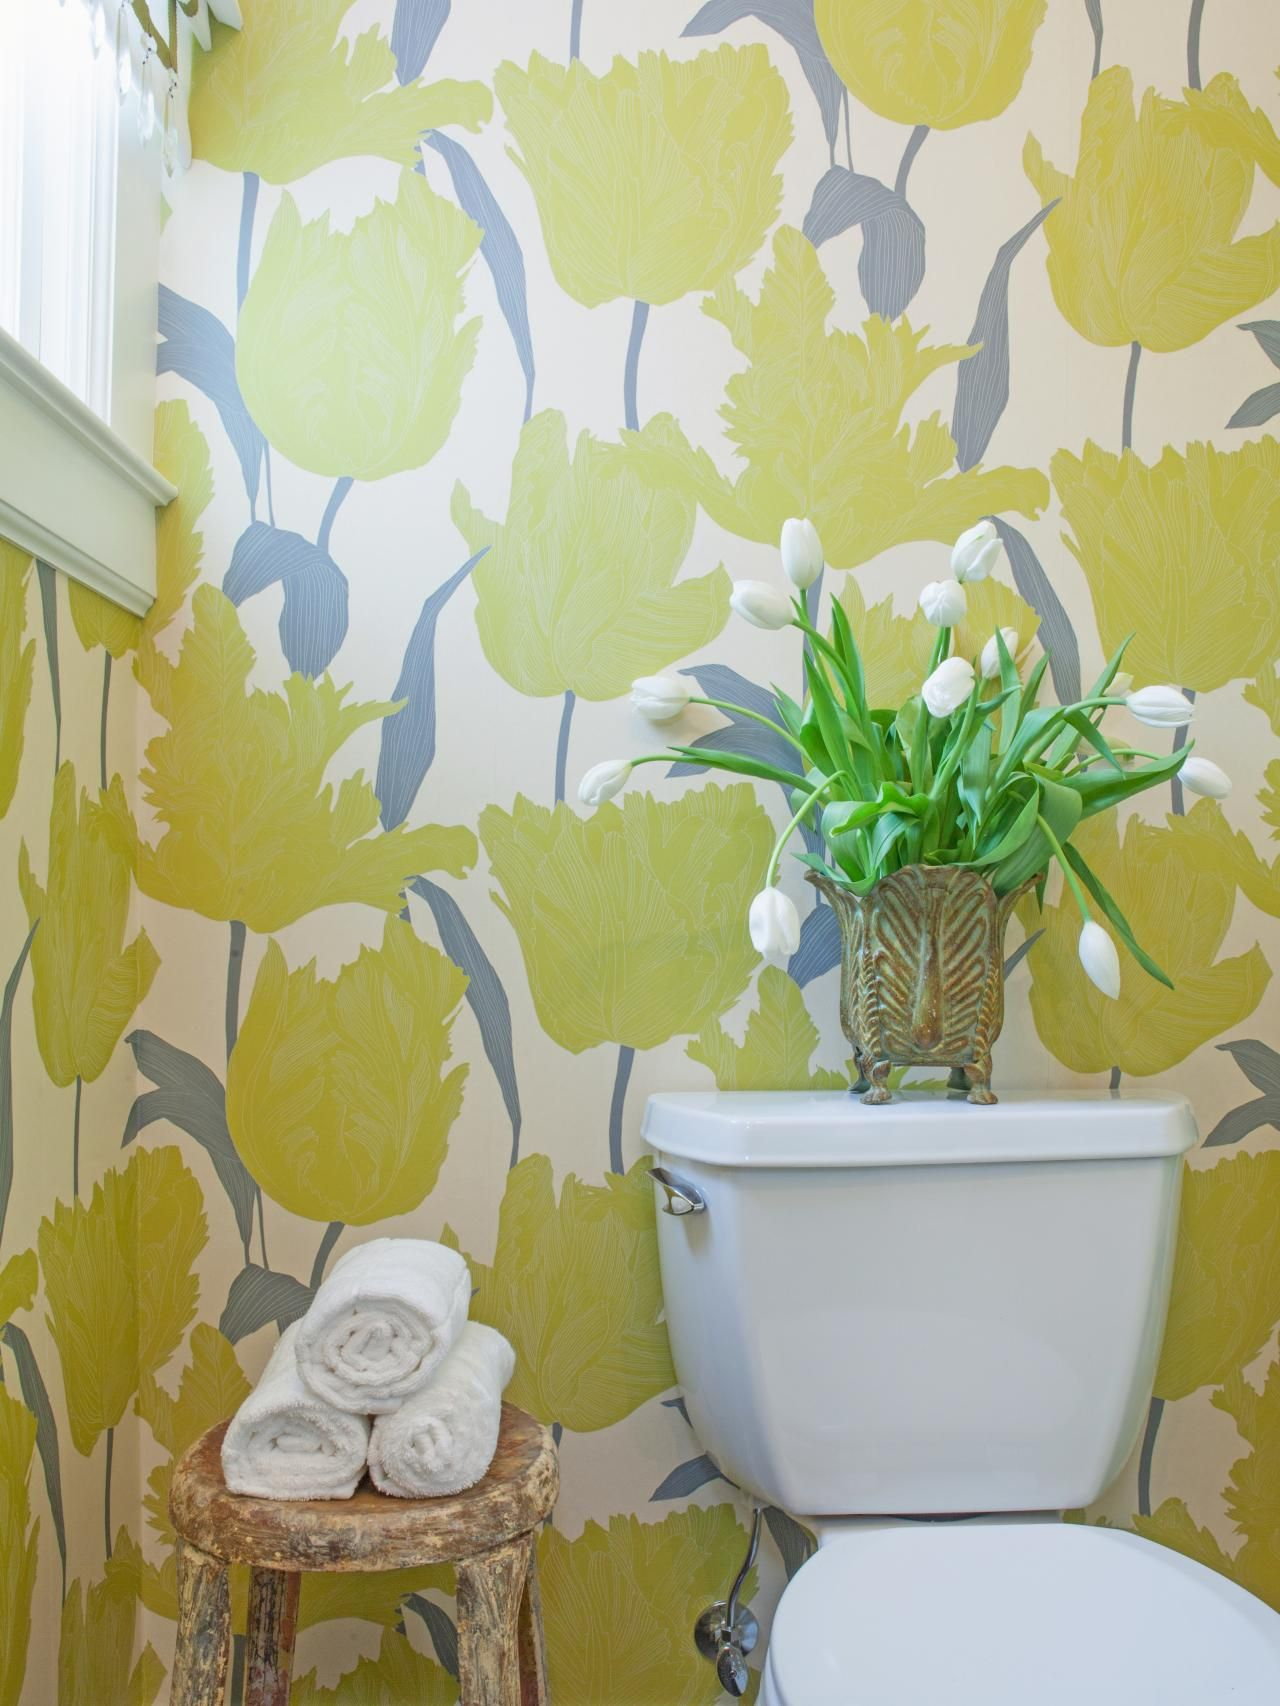 Bathroom With Yellow and Gray Floral Wallpaper Bathroom